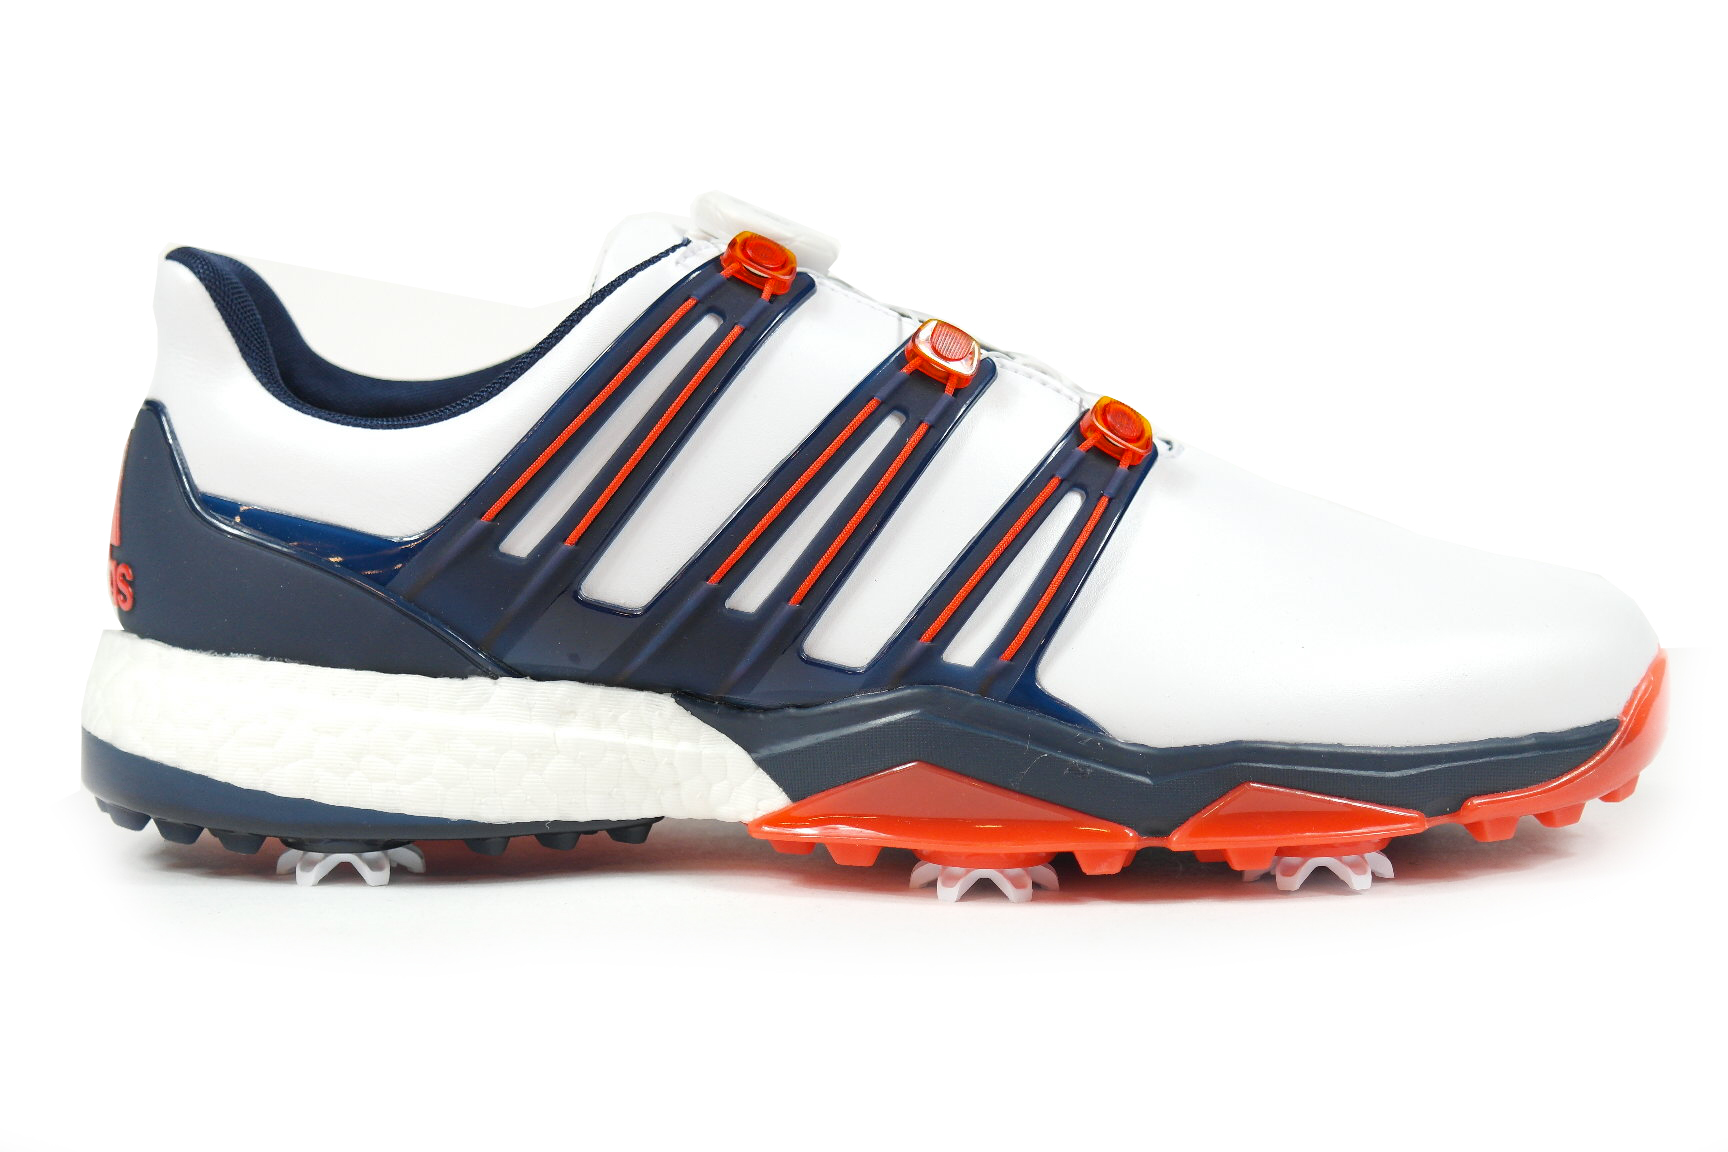 Adidas Golf Powerband Boost Boa heren golf schoenen